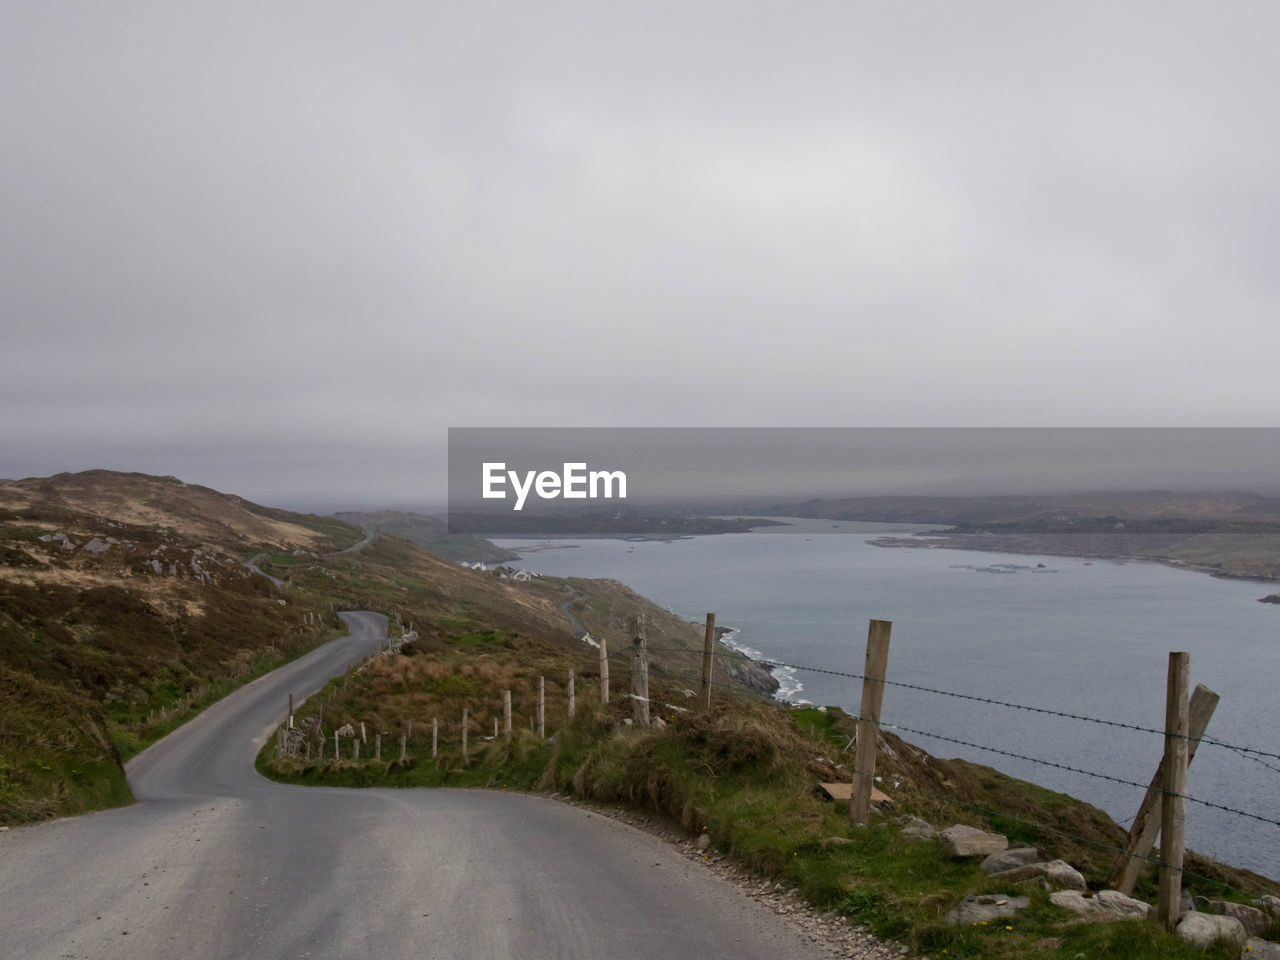 sky, water, road, scenics - nature, transportation, beauty in nature, nature, sea, tranquil scene, no people, day, cloud - sky, the way forward, tranquility, direction, non-urban scene, mountain, outdoors, horizon over water